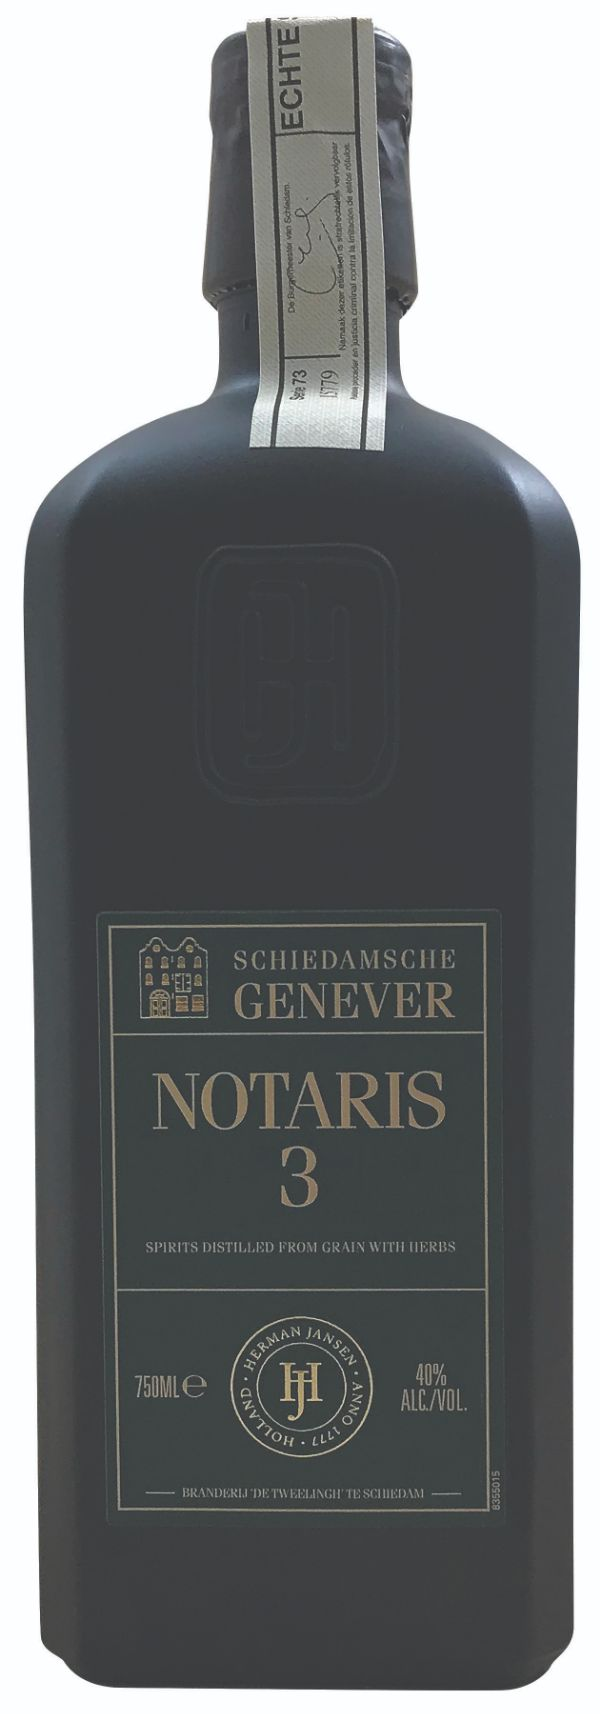 HJ Notaris 3 Year Old Genever